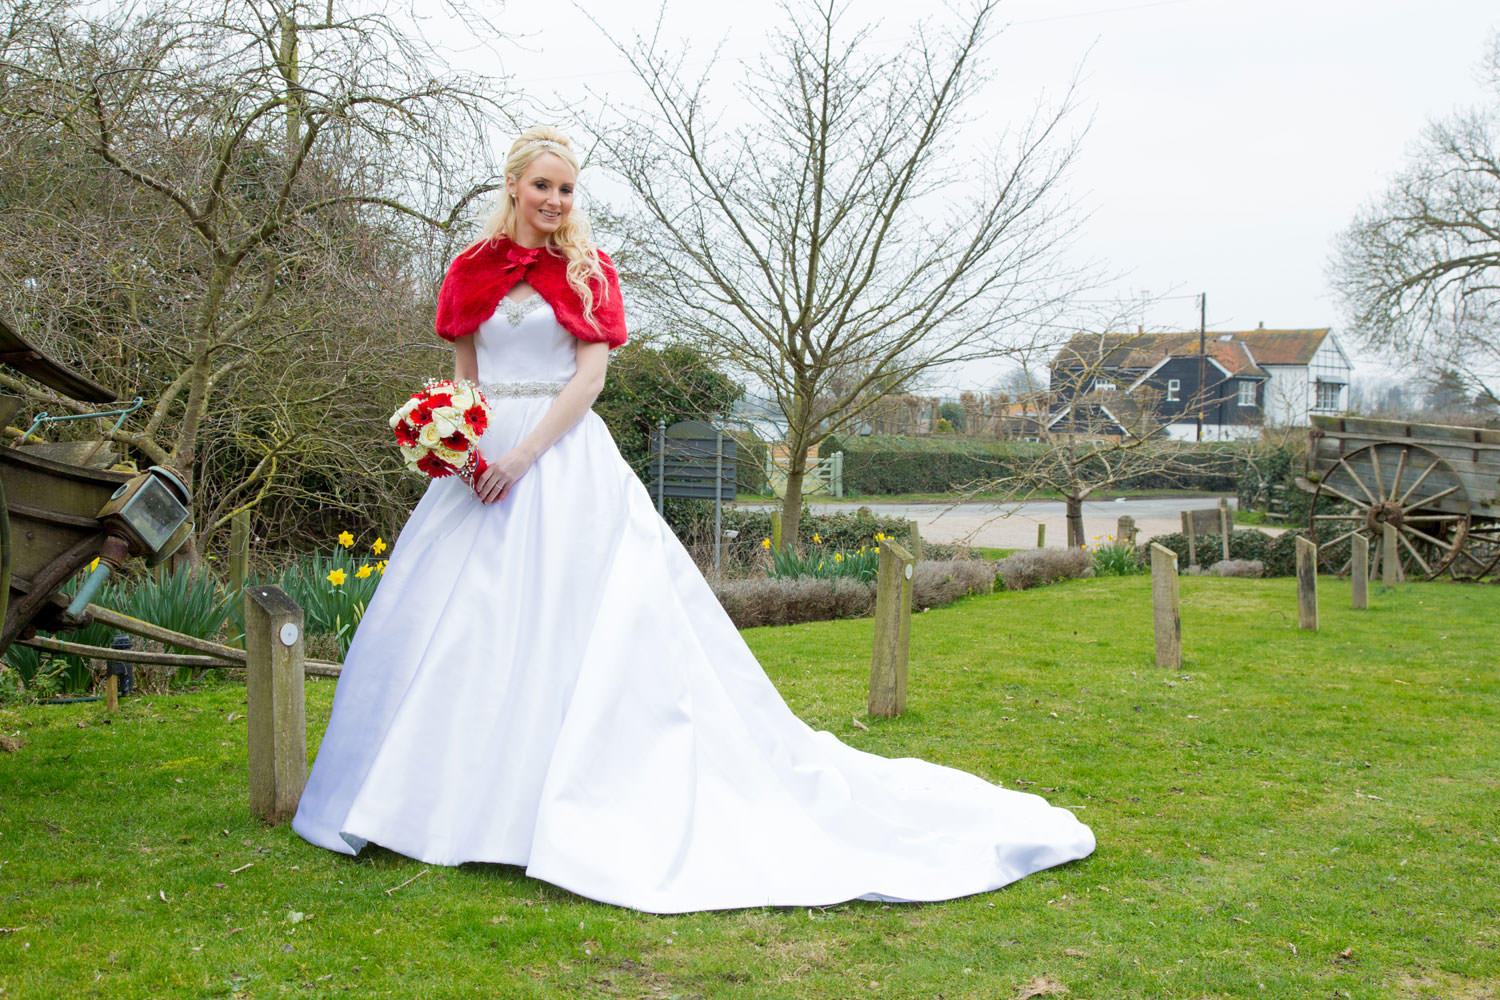 Summertime bride with flowing wedding dress